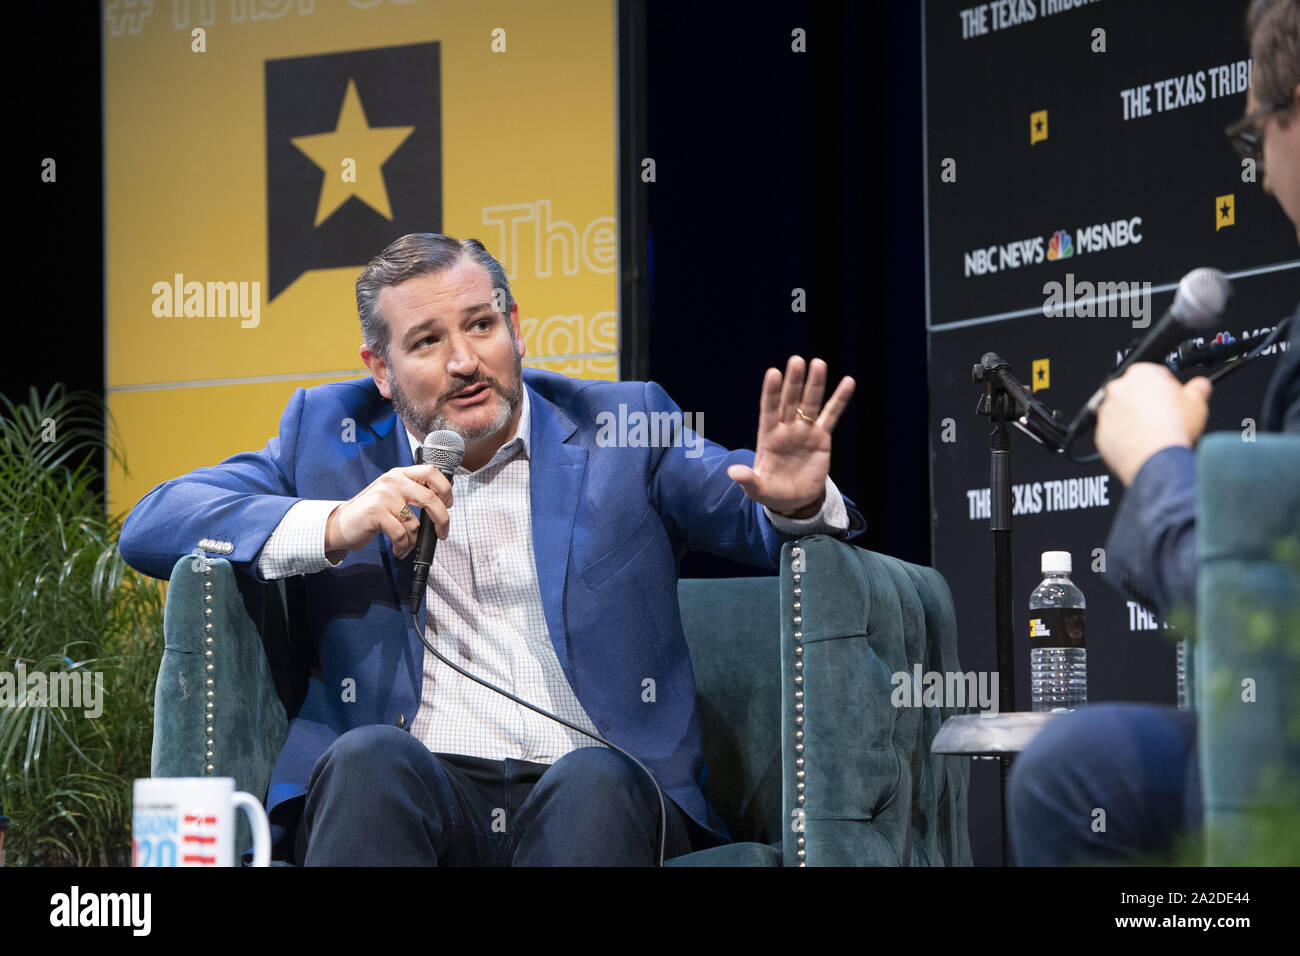 Austin, Texas, USA. 28th Sep, 2019. U.S. Senator Ted Cruz (R-Texas) holds a wide ranging political discussion with progressive journalist Chris Hayes of MSNBC during a Texas Tribune Festival session in Austin. Cruz mostly defended Donald Trump but did not rule out another presidential run of his own in 2024. Credit: Bob Daemmrich/ZUMA Wire/Alamy Live News Stock Photo